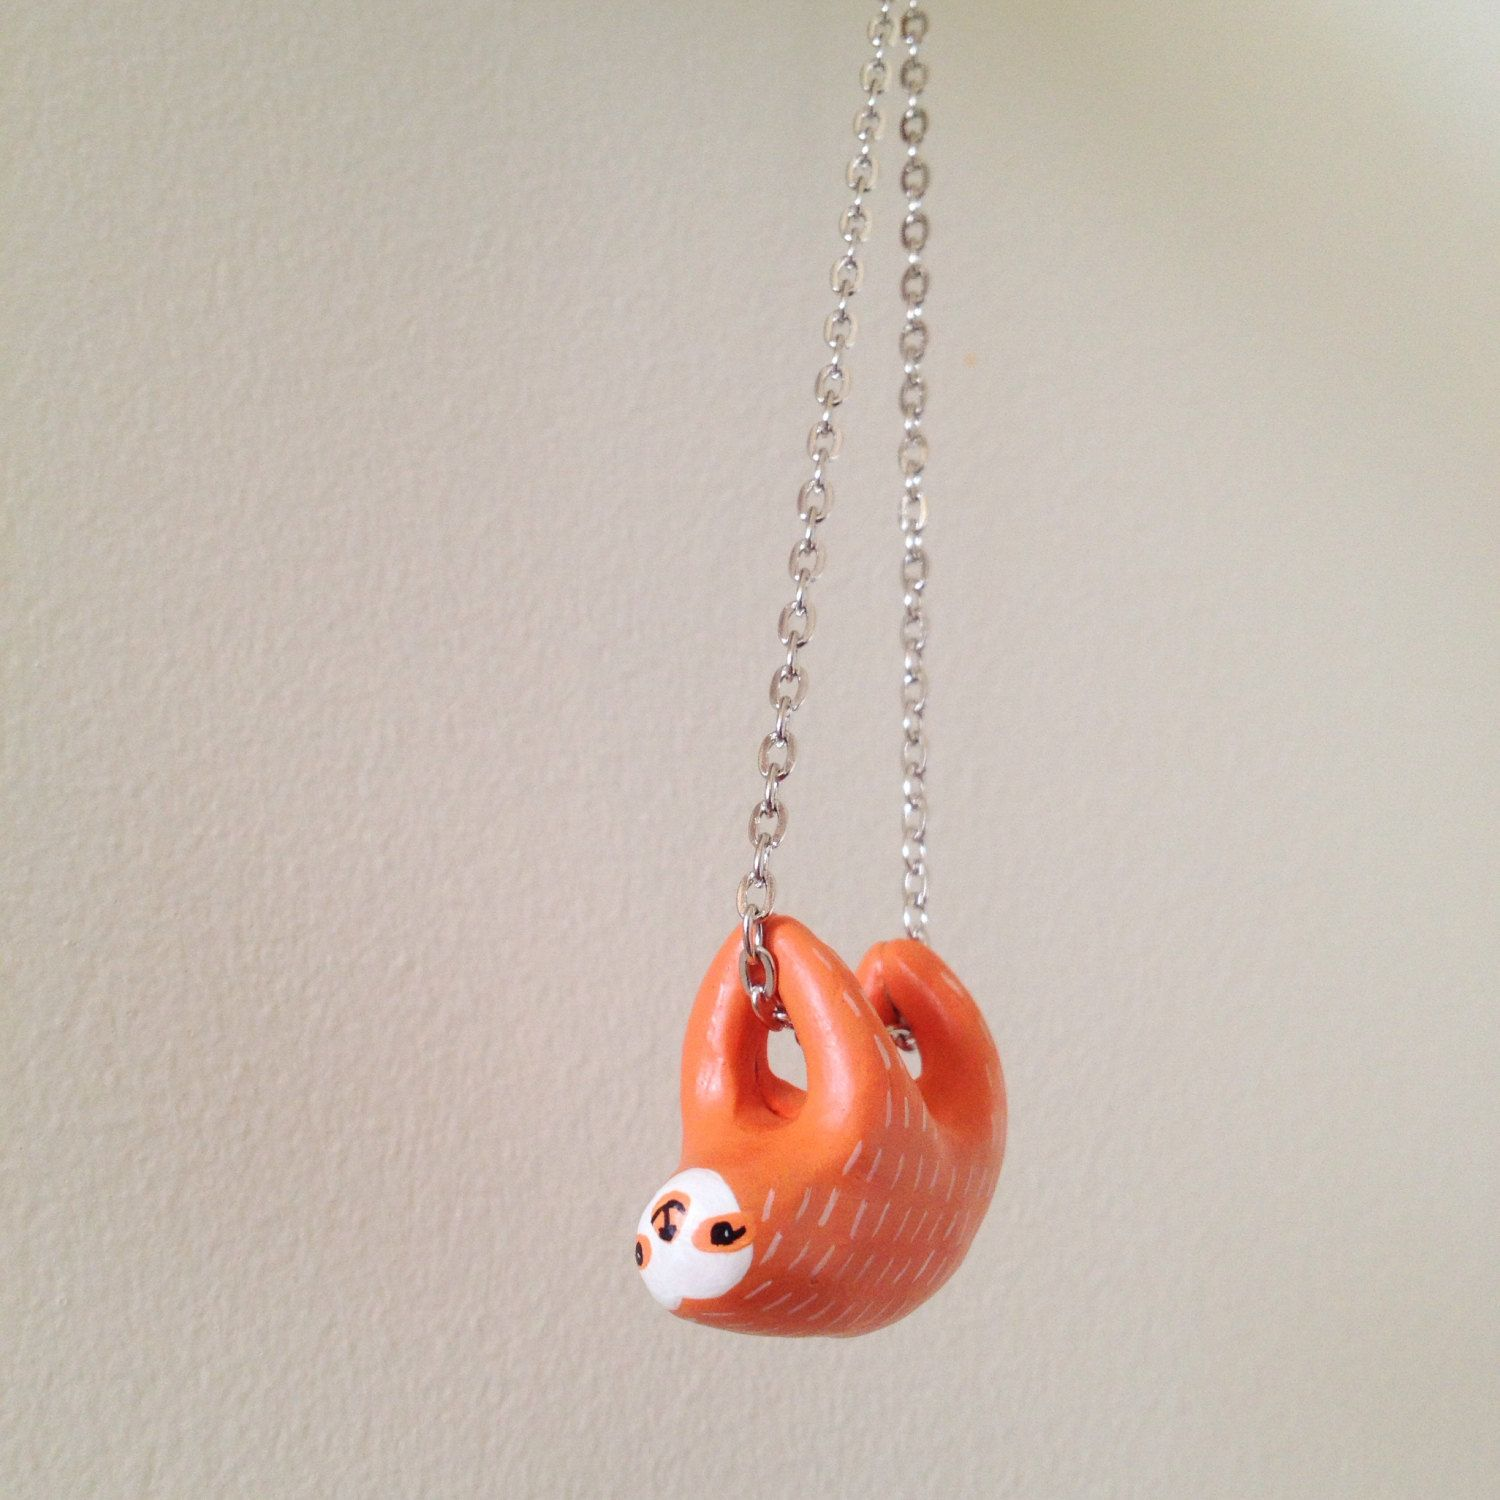 stern necklace works products design pendant sloth